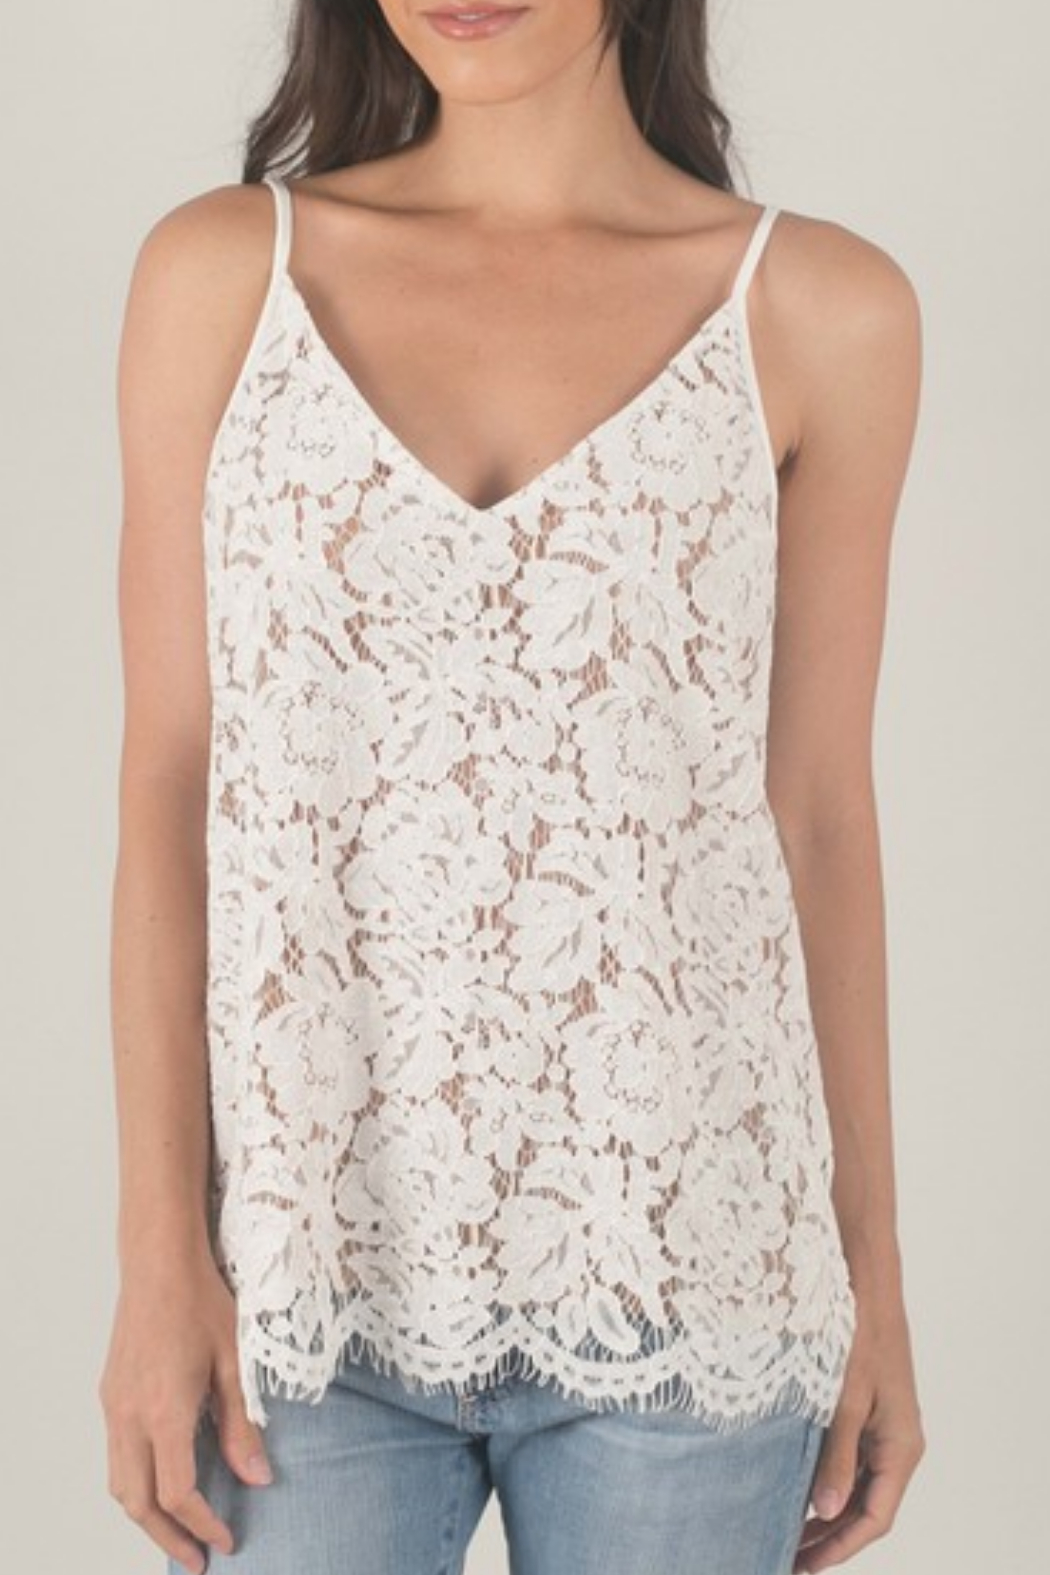 Space 46 Lined Lace Tank - Main Image